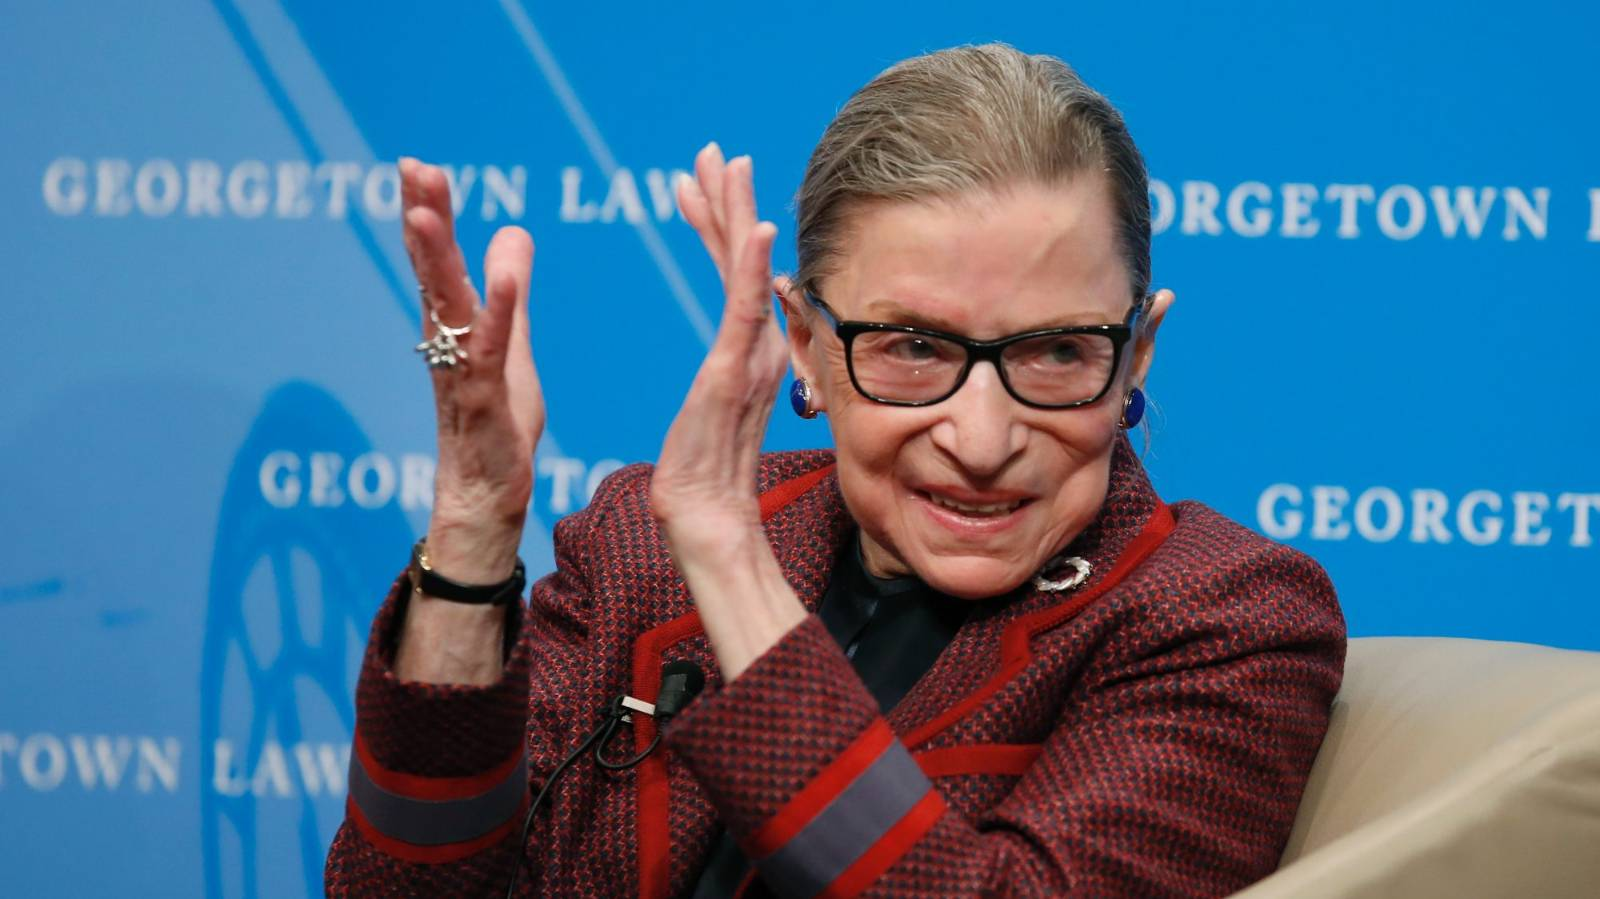 Veteran US Supreme Court Justice Ruth Bader Ginsburg has died